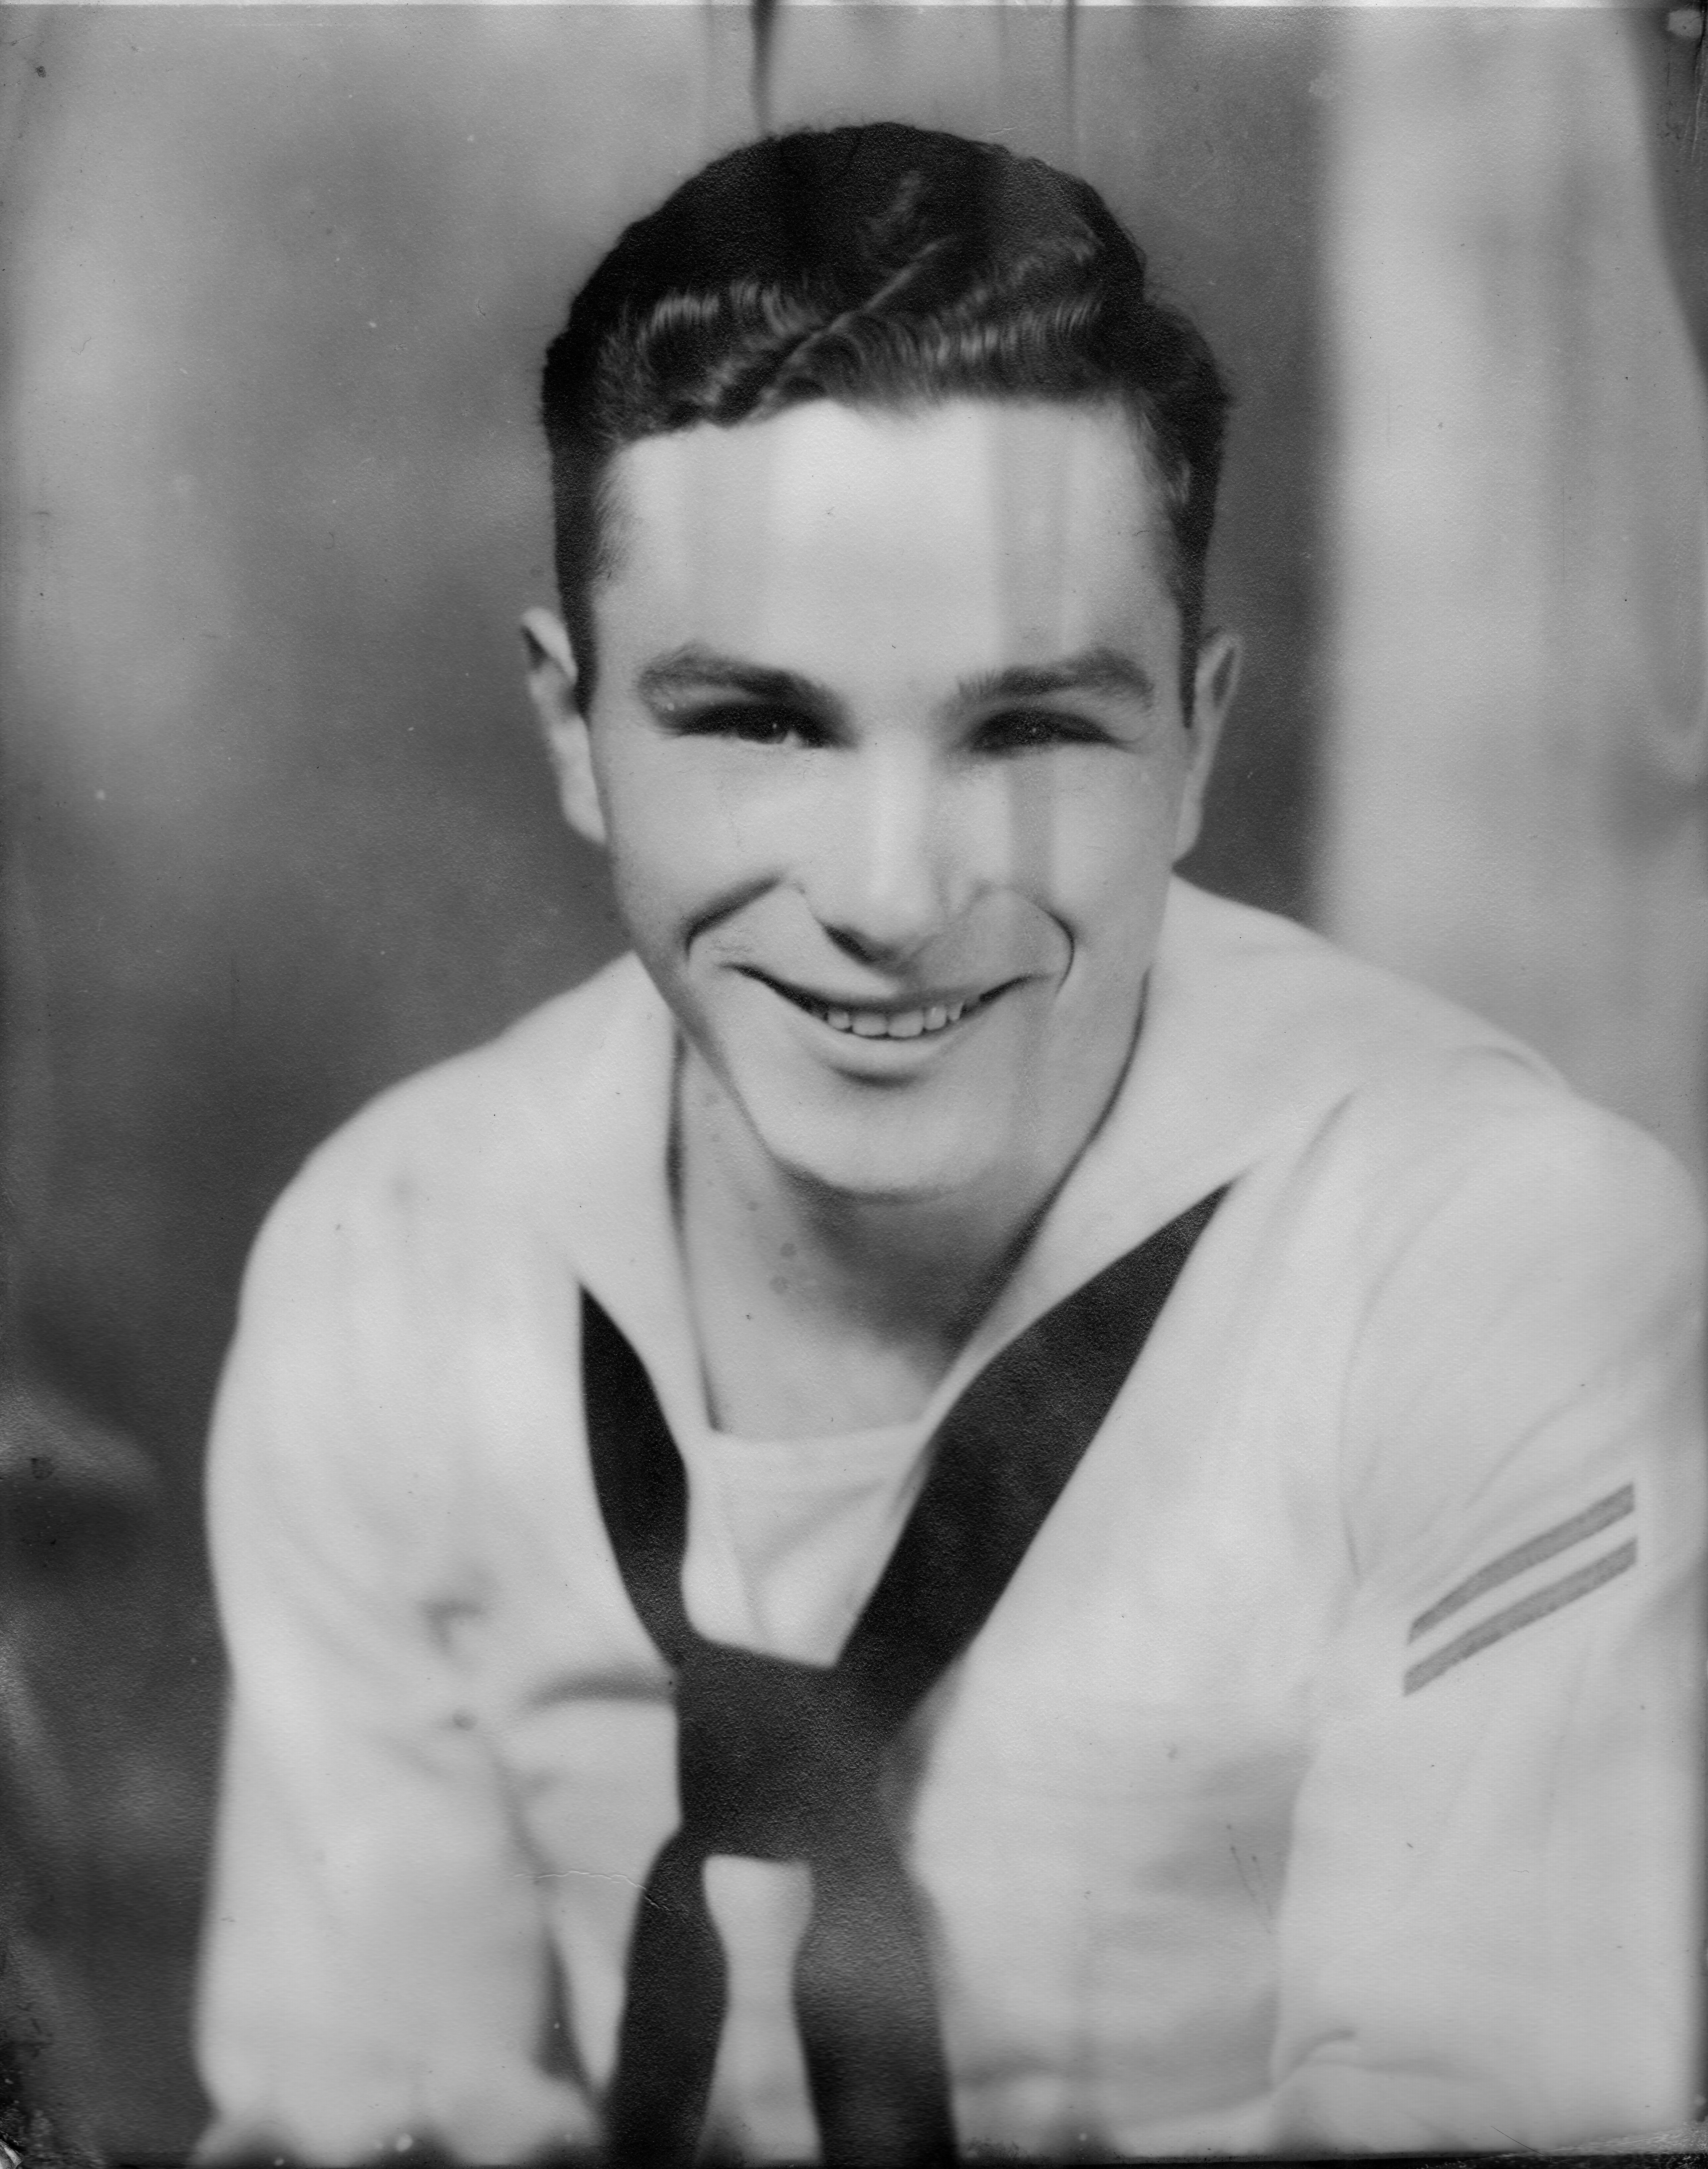 "William ""Bill"" Bass, U.S. Navy, 1949(?) - 1952, BT3 aboard the aircraft carrier USS Midway during the early Cold War and promoted to Chief Petty Officer, a post he declined so he could return to the family farm in Virginia."